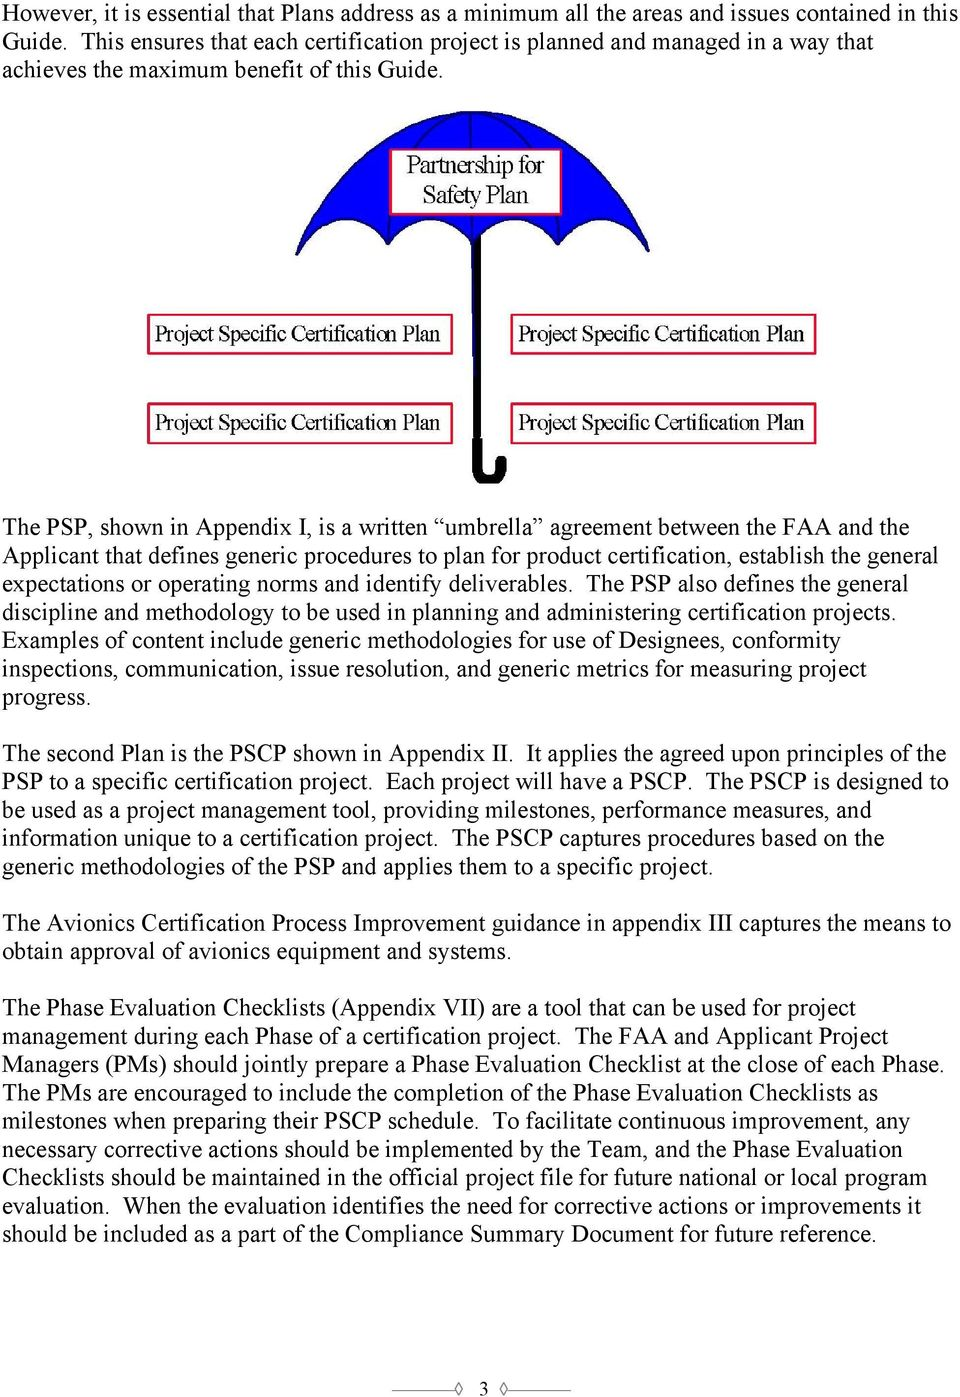 The PSP, shown in Appendix I, is a written umbrella agreement between the FAA and the Applicant that defines generic procedures to plan for product certification, establish the general expectations